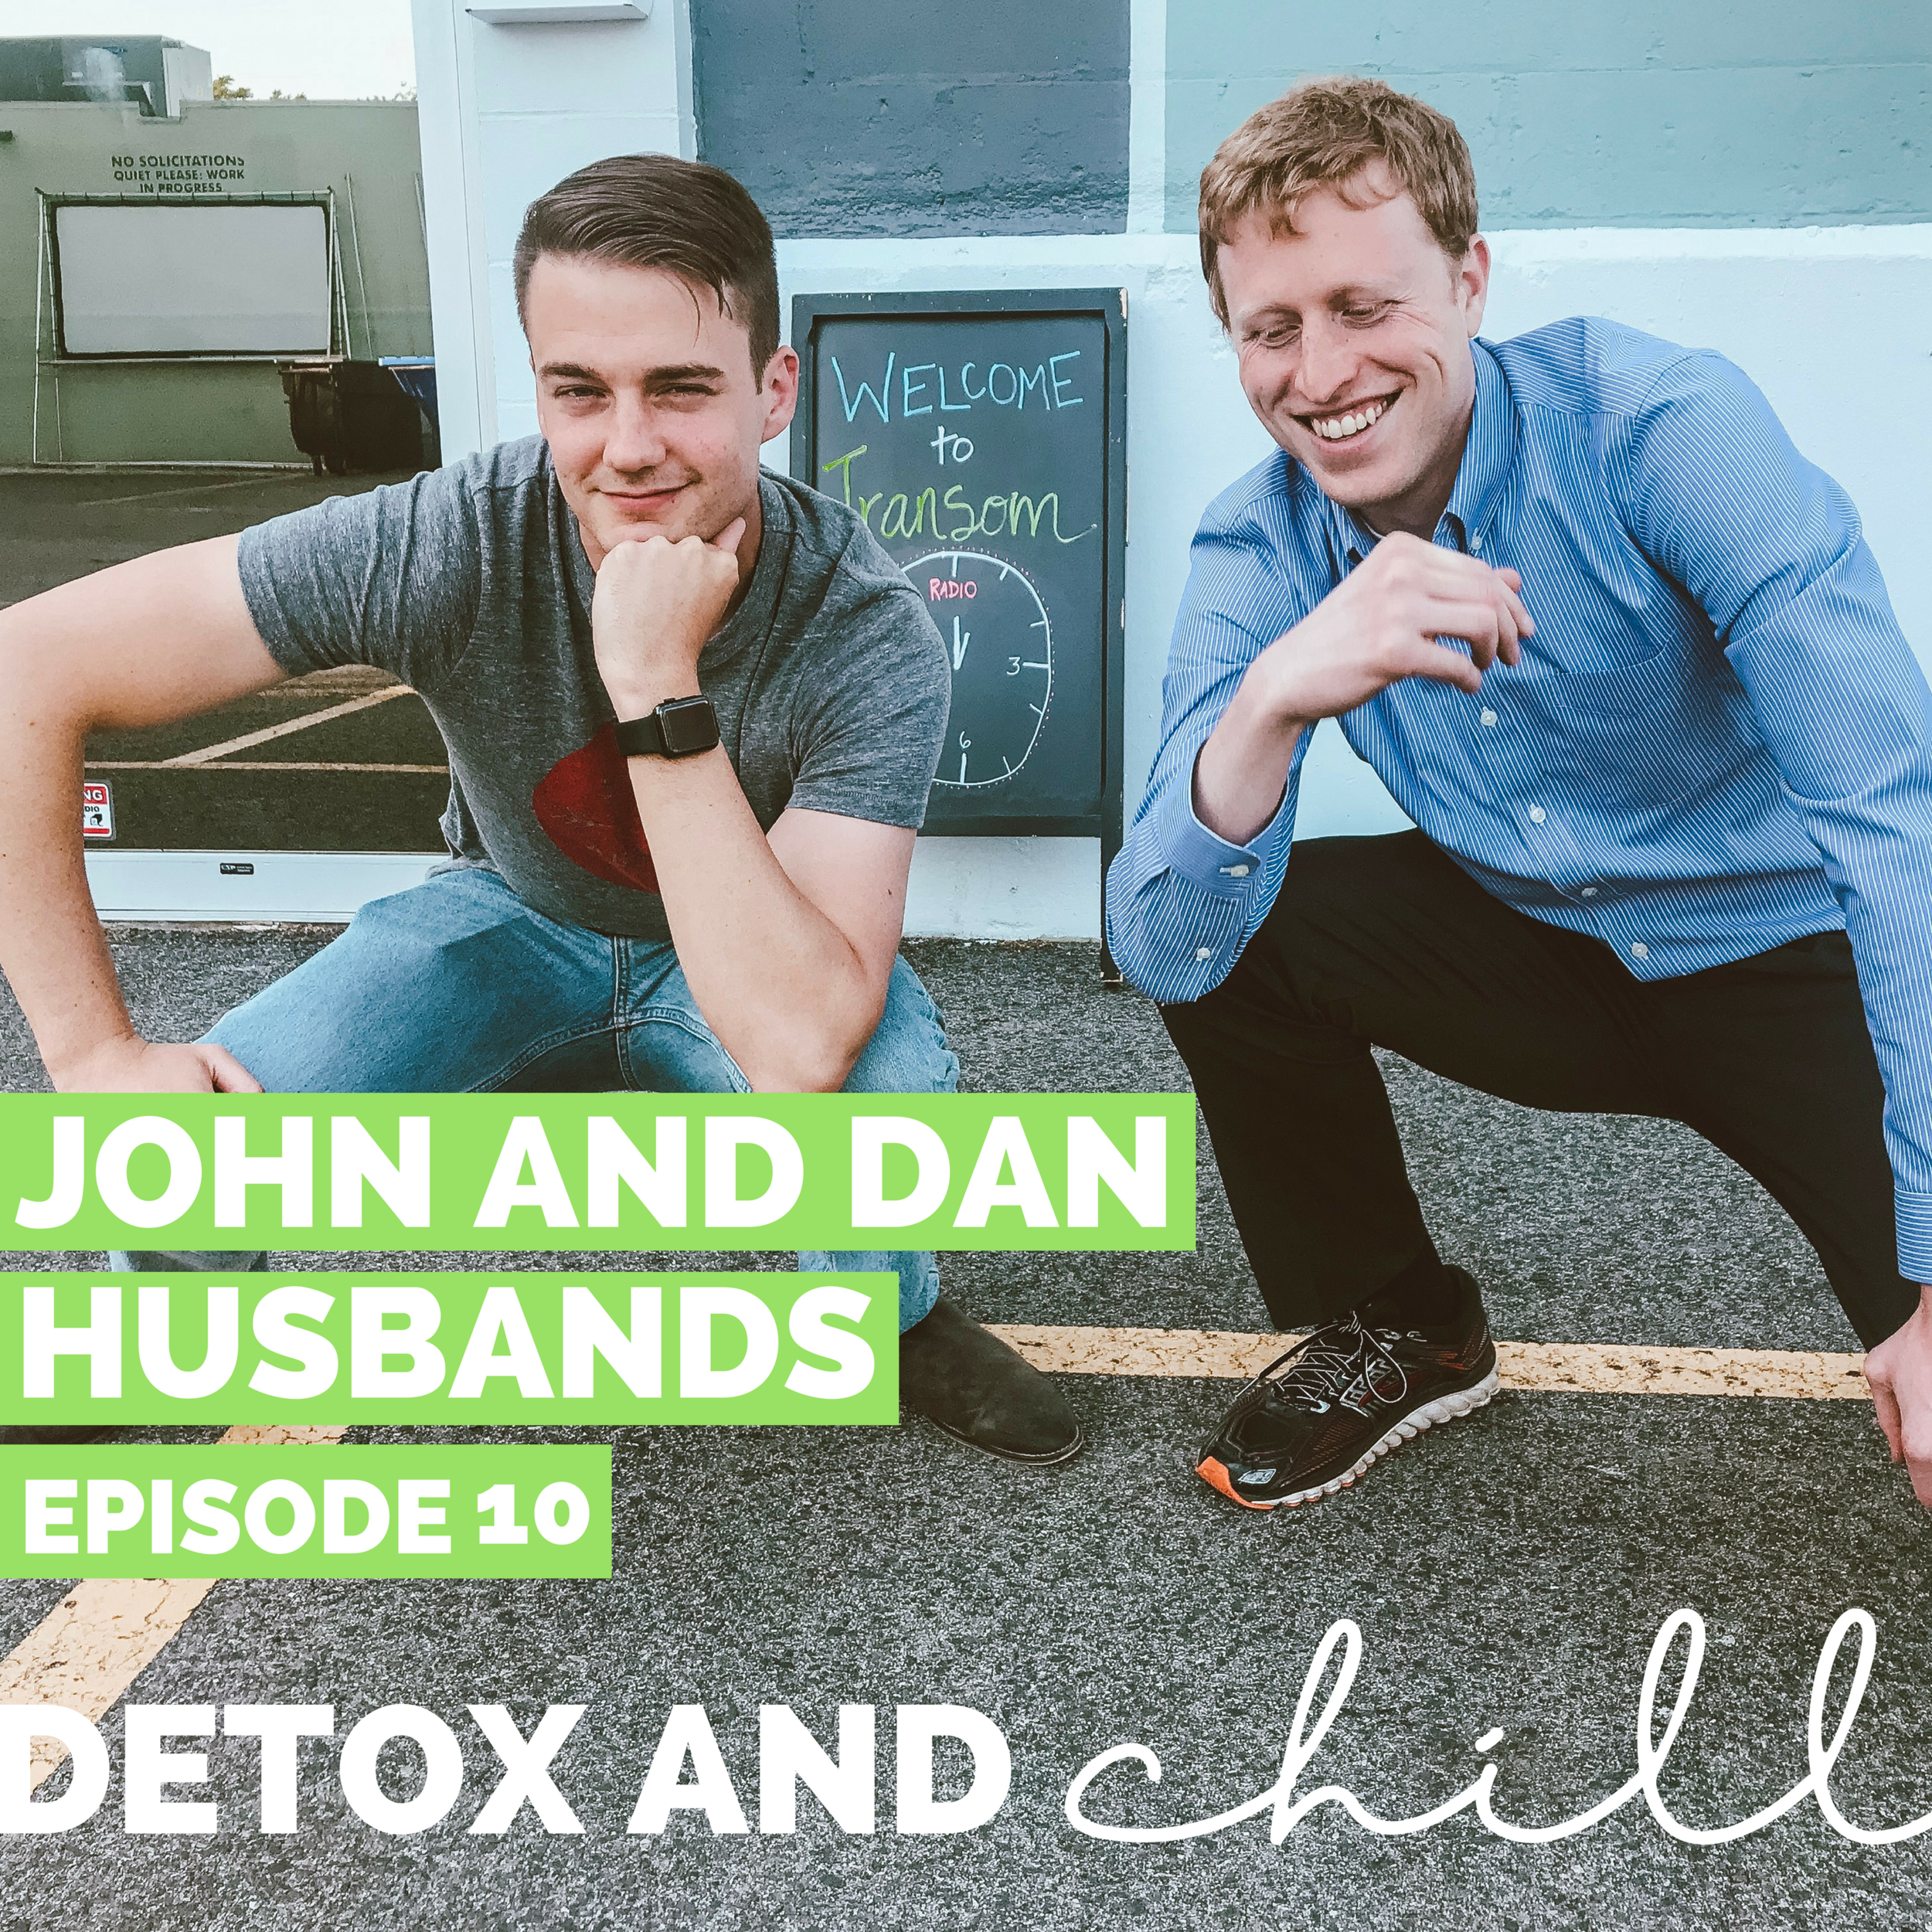 Episode #10: John & Dan // Husbands of the Detox & Chill Podcast // Love Stories & Budget Thursdays   - This episode is brought to you by our amazing...husbands. We are so grateful that these busy guys took the time to record an episode with us, and we get into the NITTY GRITTY of how we first met, knew we had found *the one*, and our first dates (awww).We also talk about some more detailed/private marriage topics like budgeting, finances, dividing chores, and even how to divide holidays. We get honest and real - sometimes certain things ARE a struggle, but that's why you work through them as a team!We had so much fun with this one, and even got a sneak peak into what these guys eat on a daily basis (and spoiler alert - Dan's list is LONG).  We hope you enjoy - and stay tuned for the next couple months when we hand the reins over to interview US.HAPPY MONDAY FAM!Xoxo,Meg & Beck